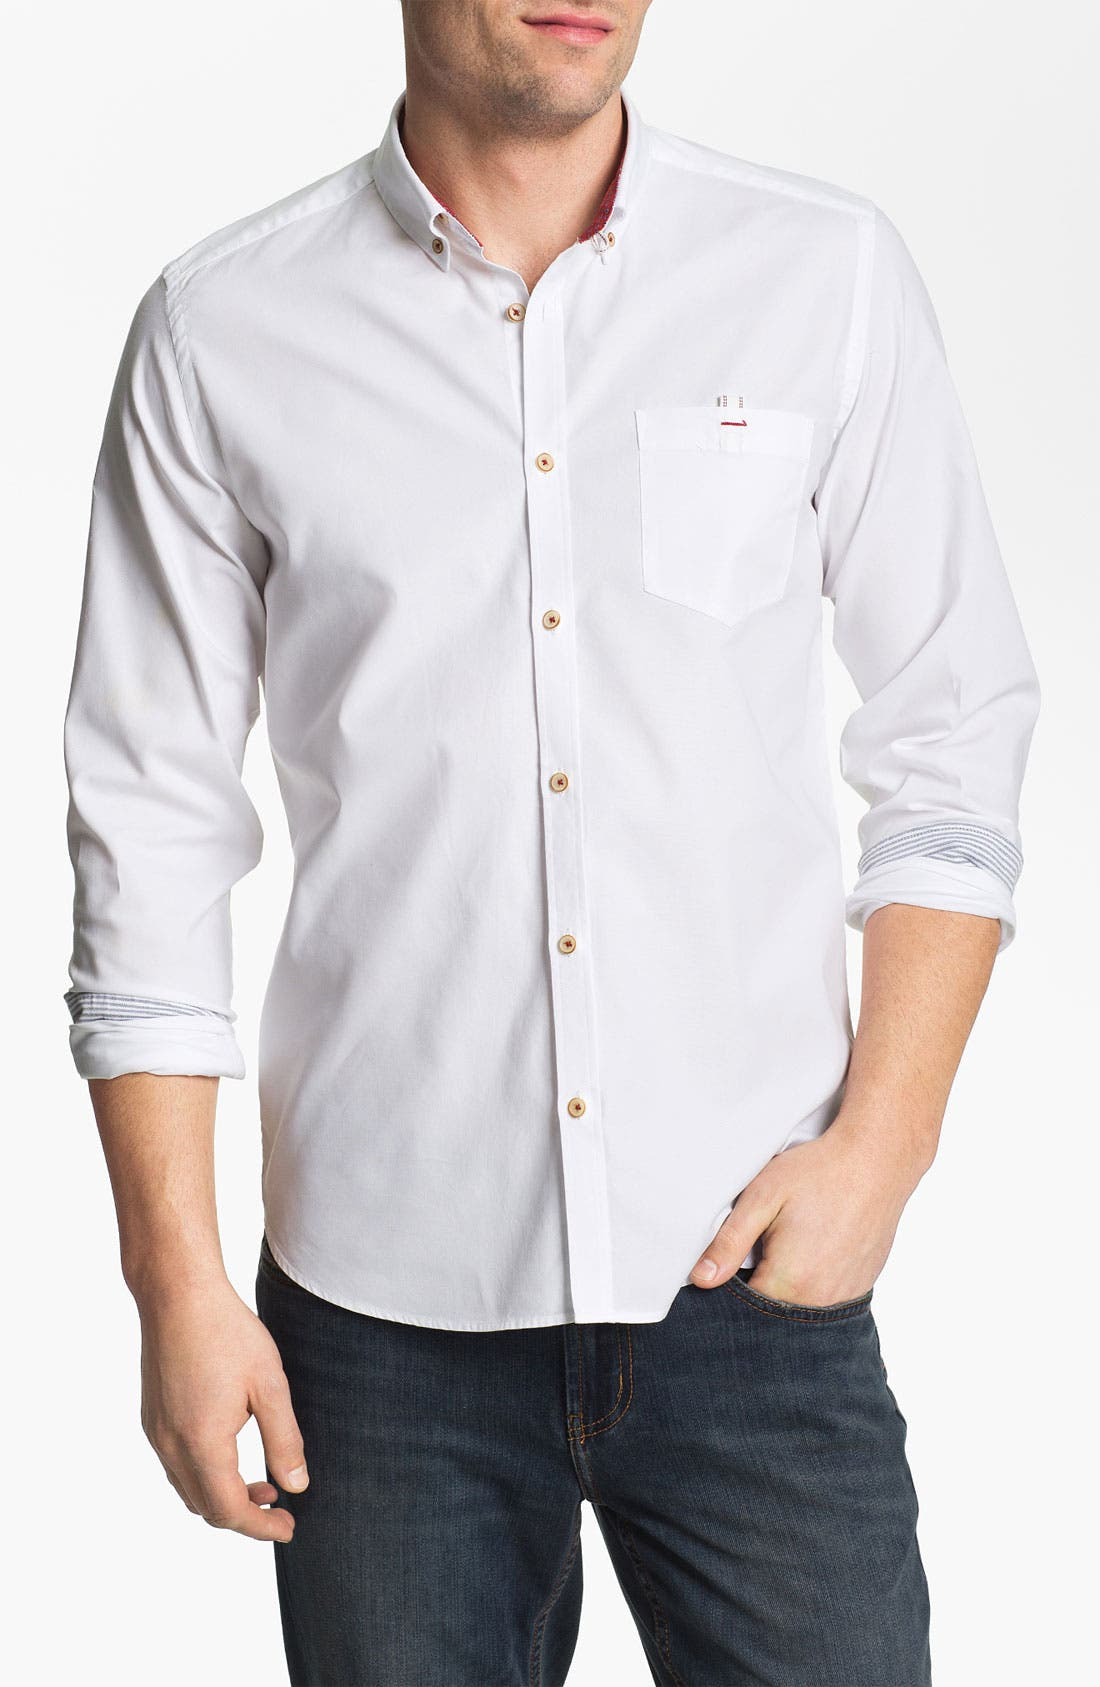 Alternate Image 1 Selected - Ted Baker London 'Oxbid' Trim Fit Sport Shirt